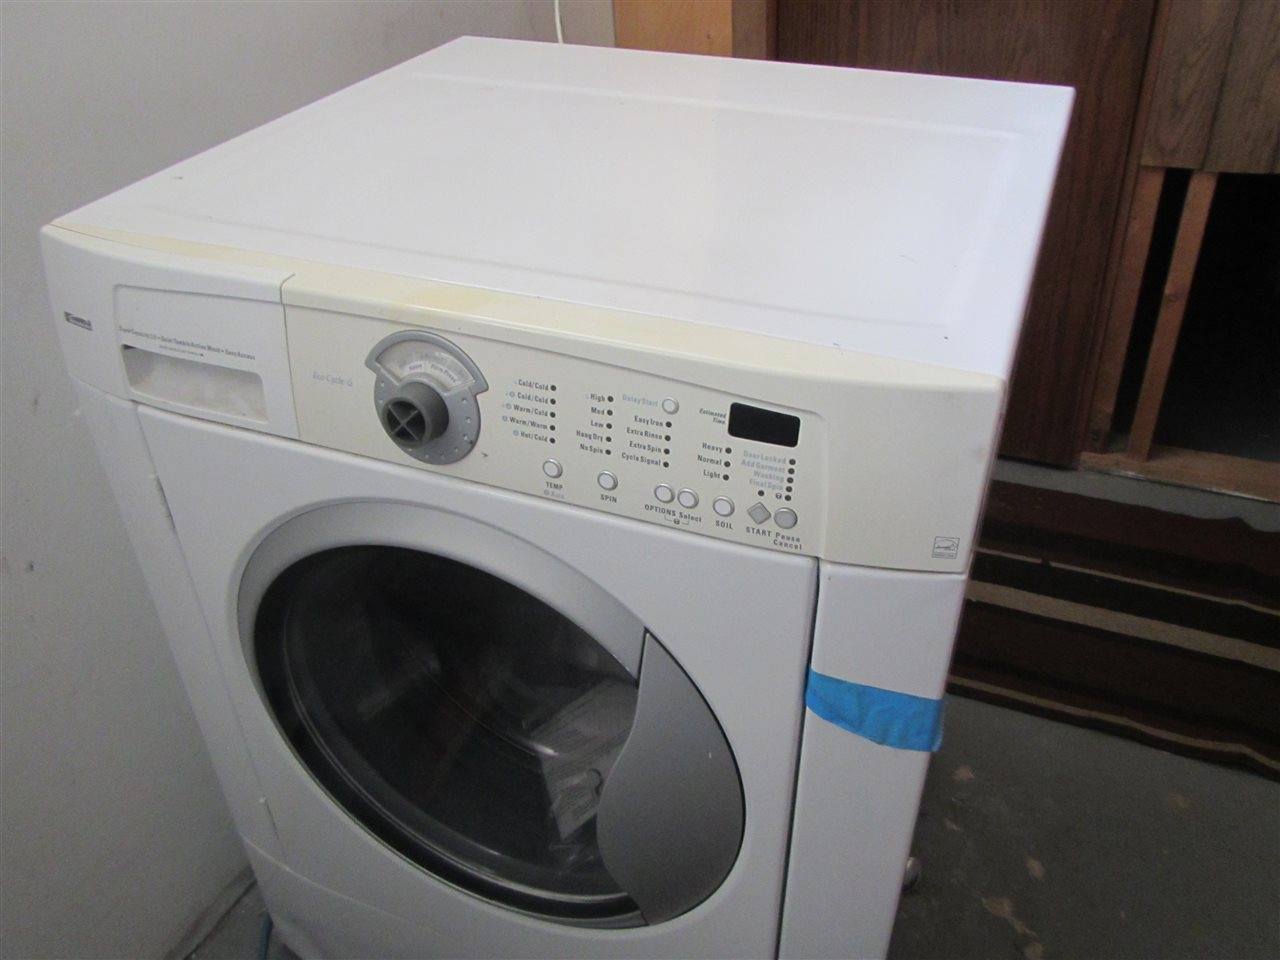 This is the second washing machine which has not been installed